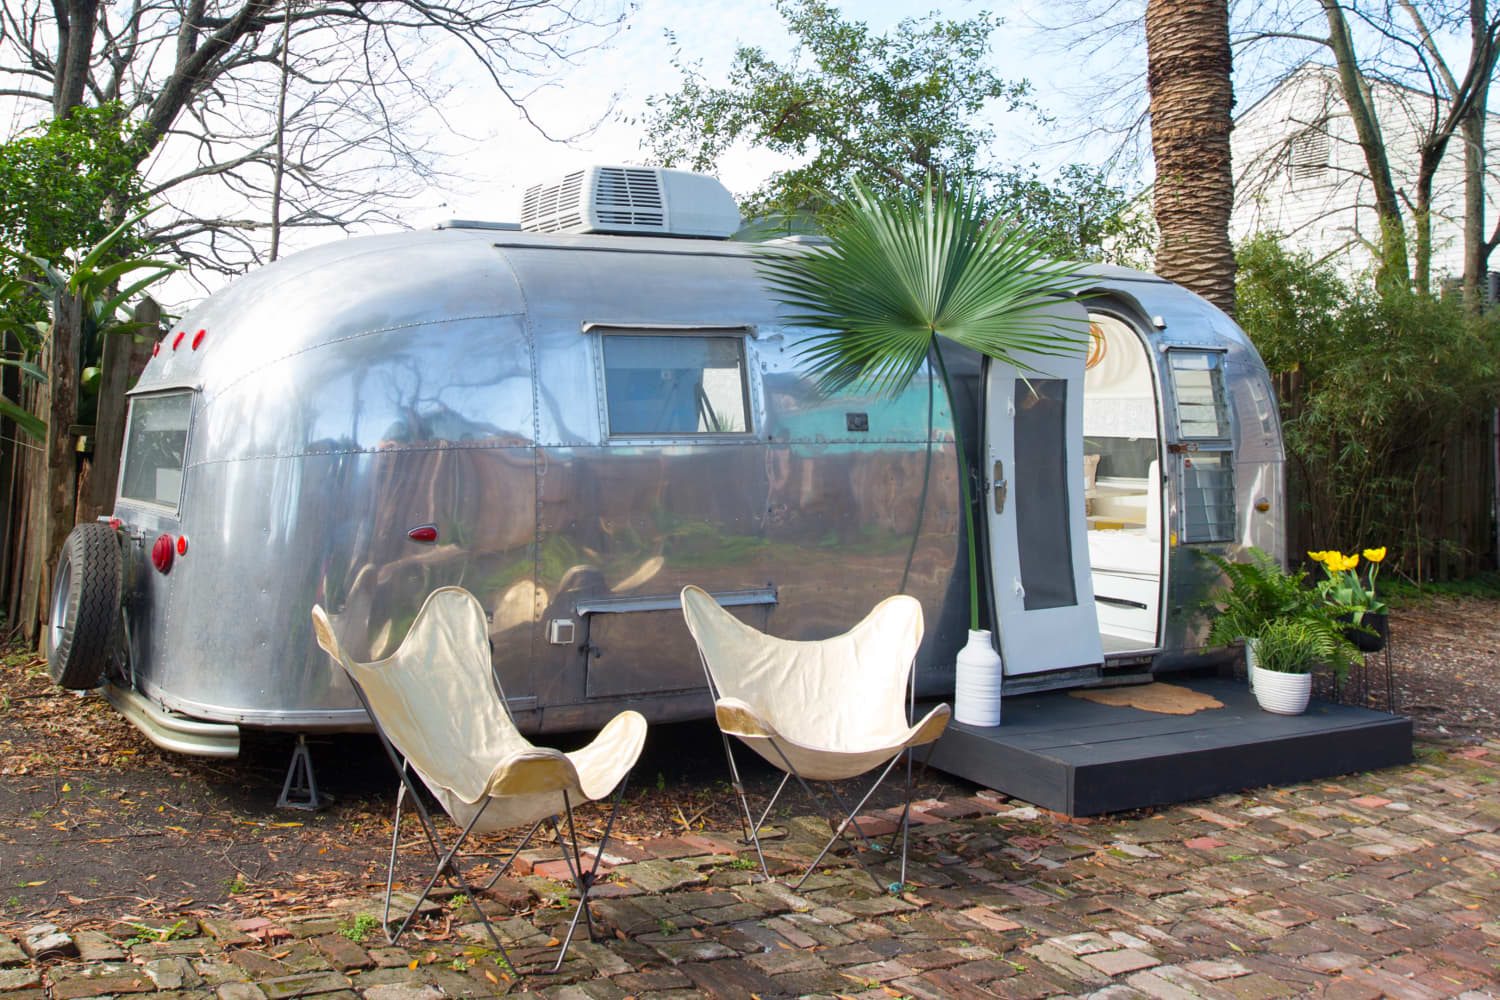 So You Want to Renovate an Airstream? 5 Money-Saving Tips from People Who Did It